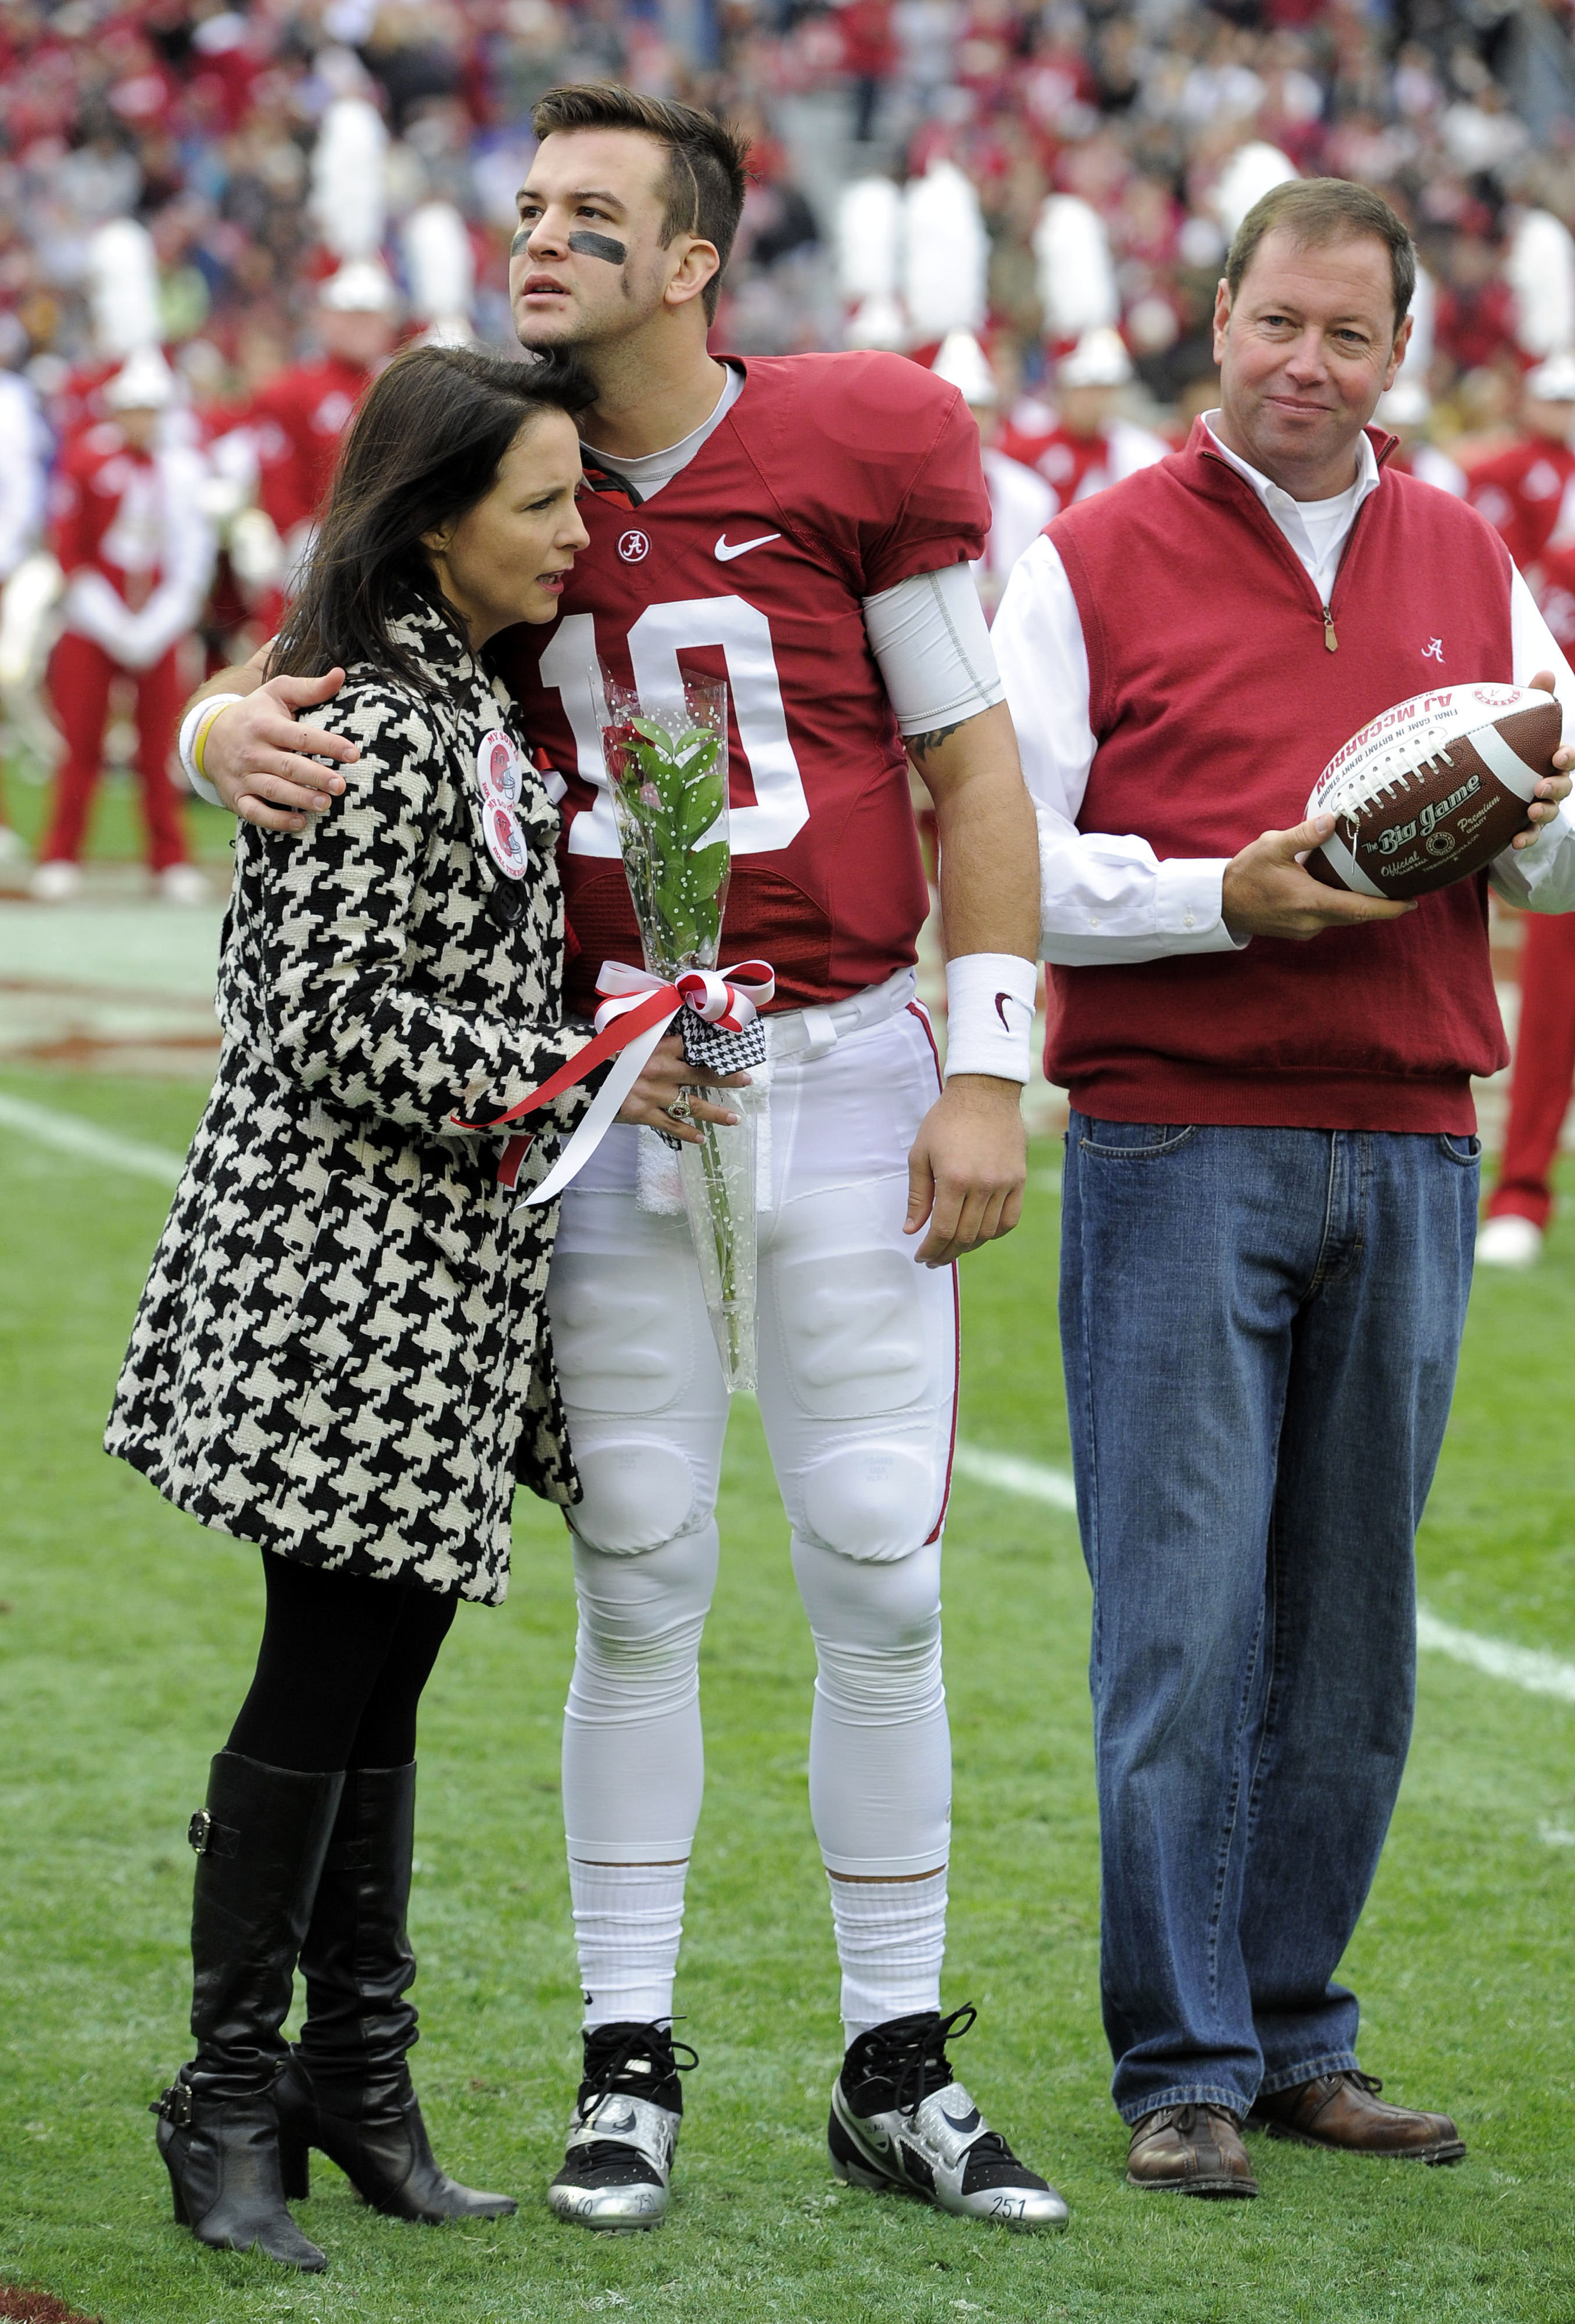 AJ McCarron claims he was not healthy at Alabama